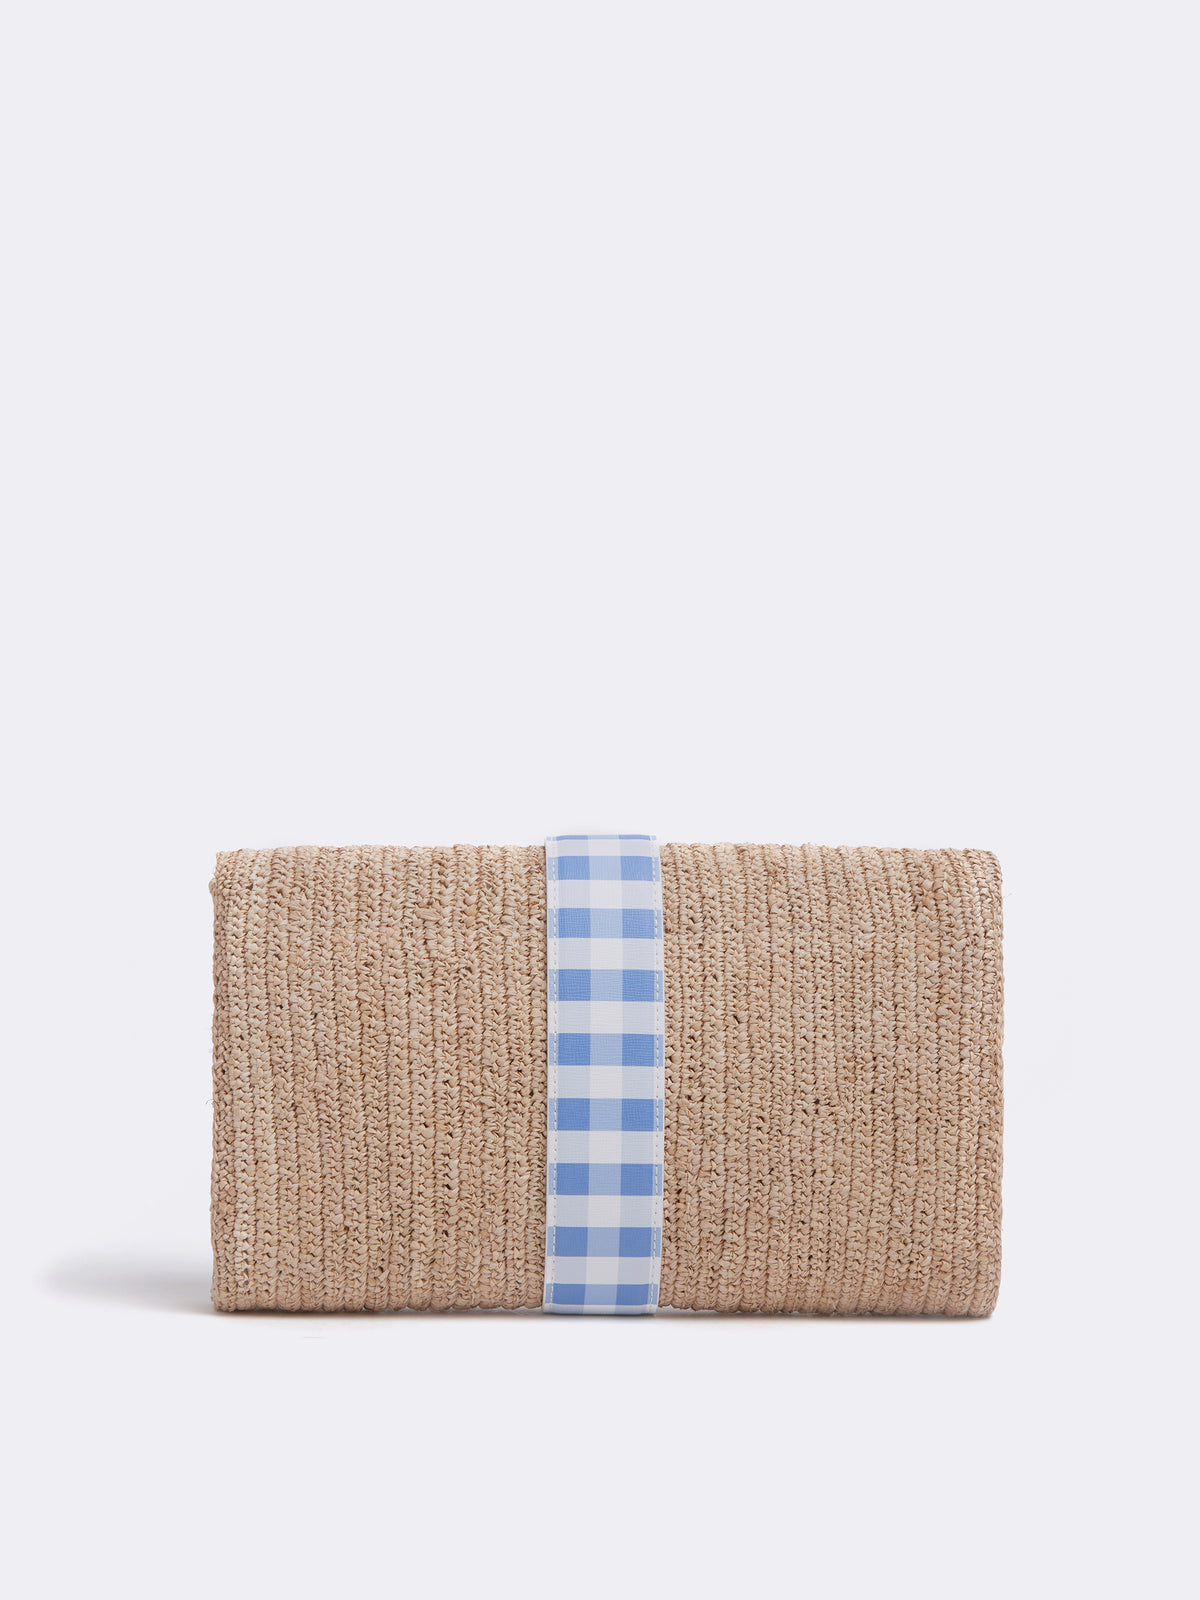 Mark Cross Sylvette Raffia & Leather Clutch Mini Franzi Gingham Regatta Blue / Natural Raffia Back